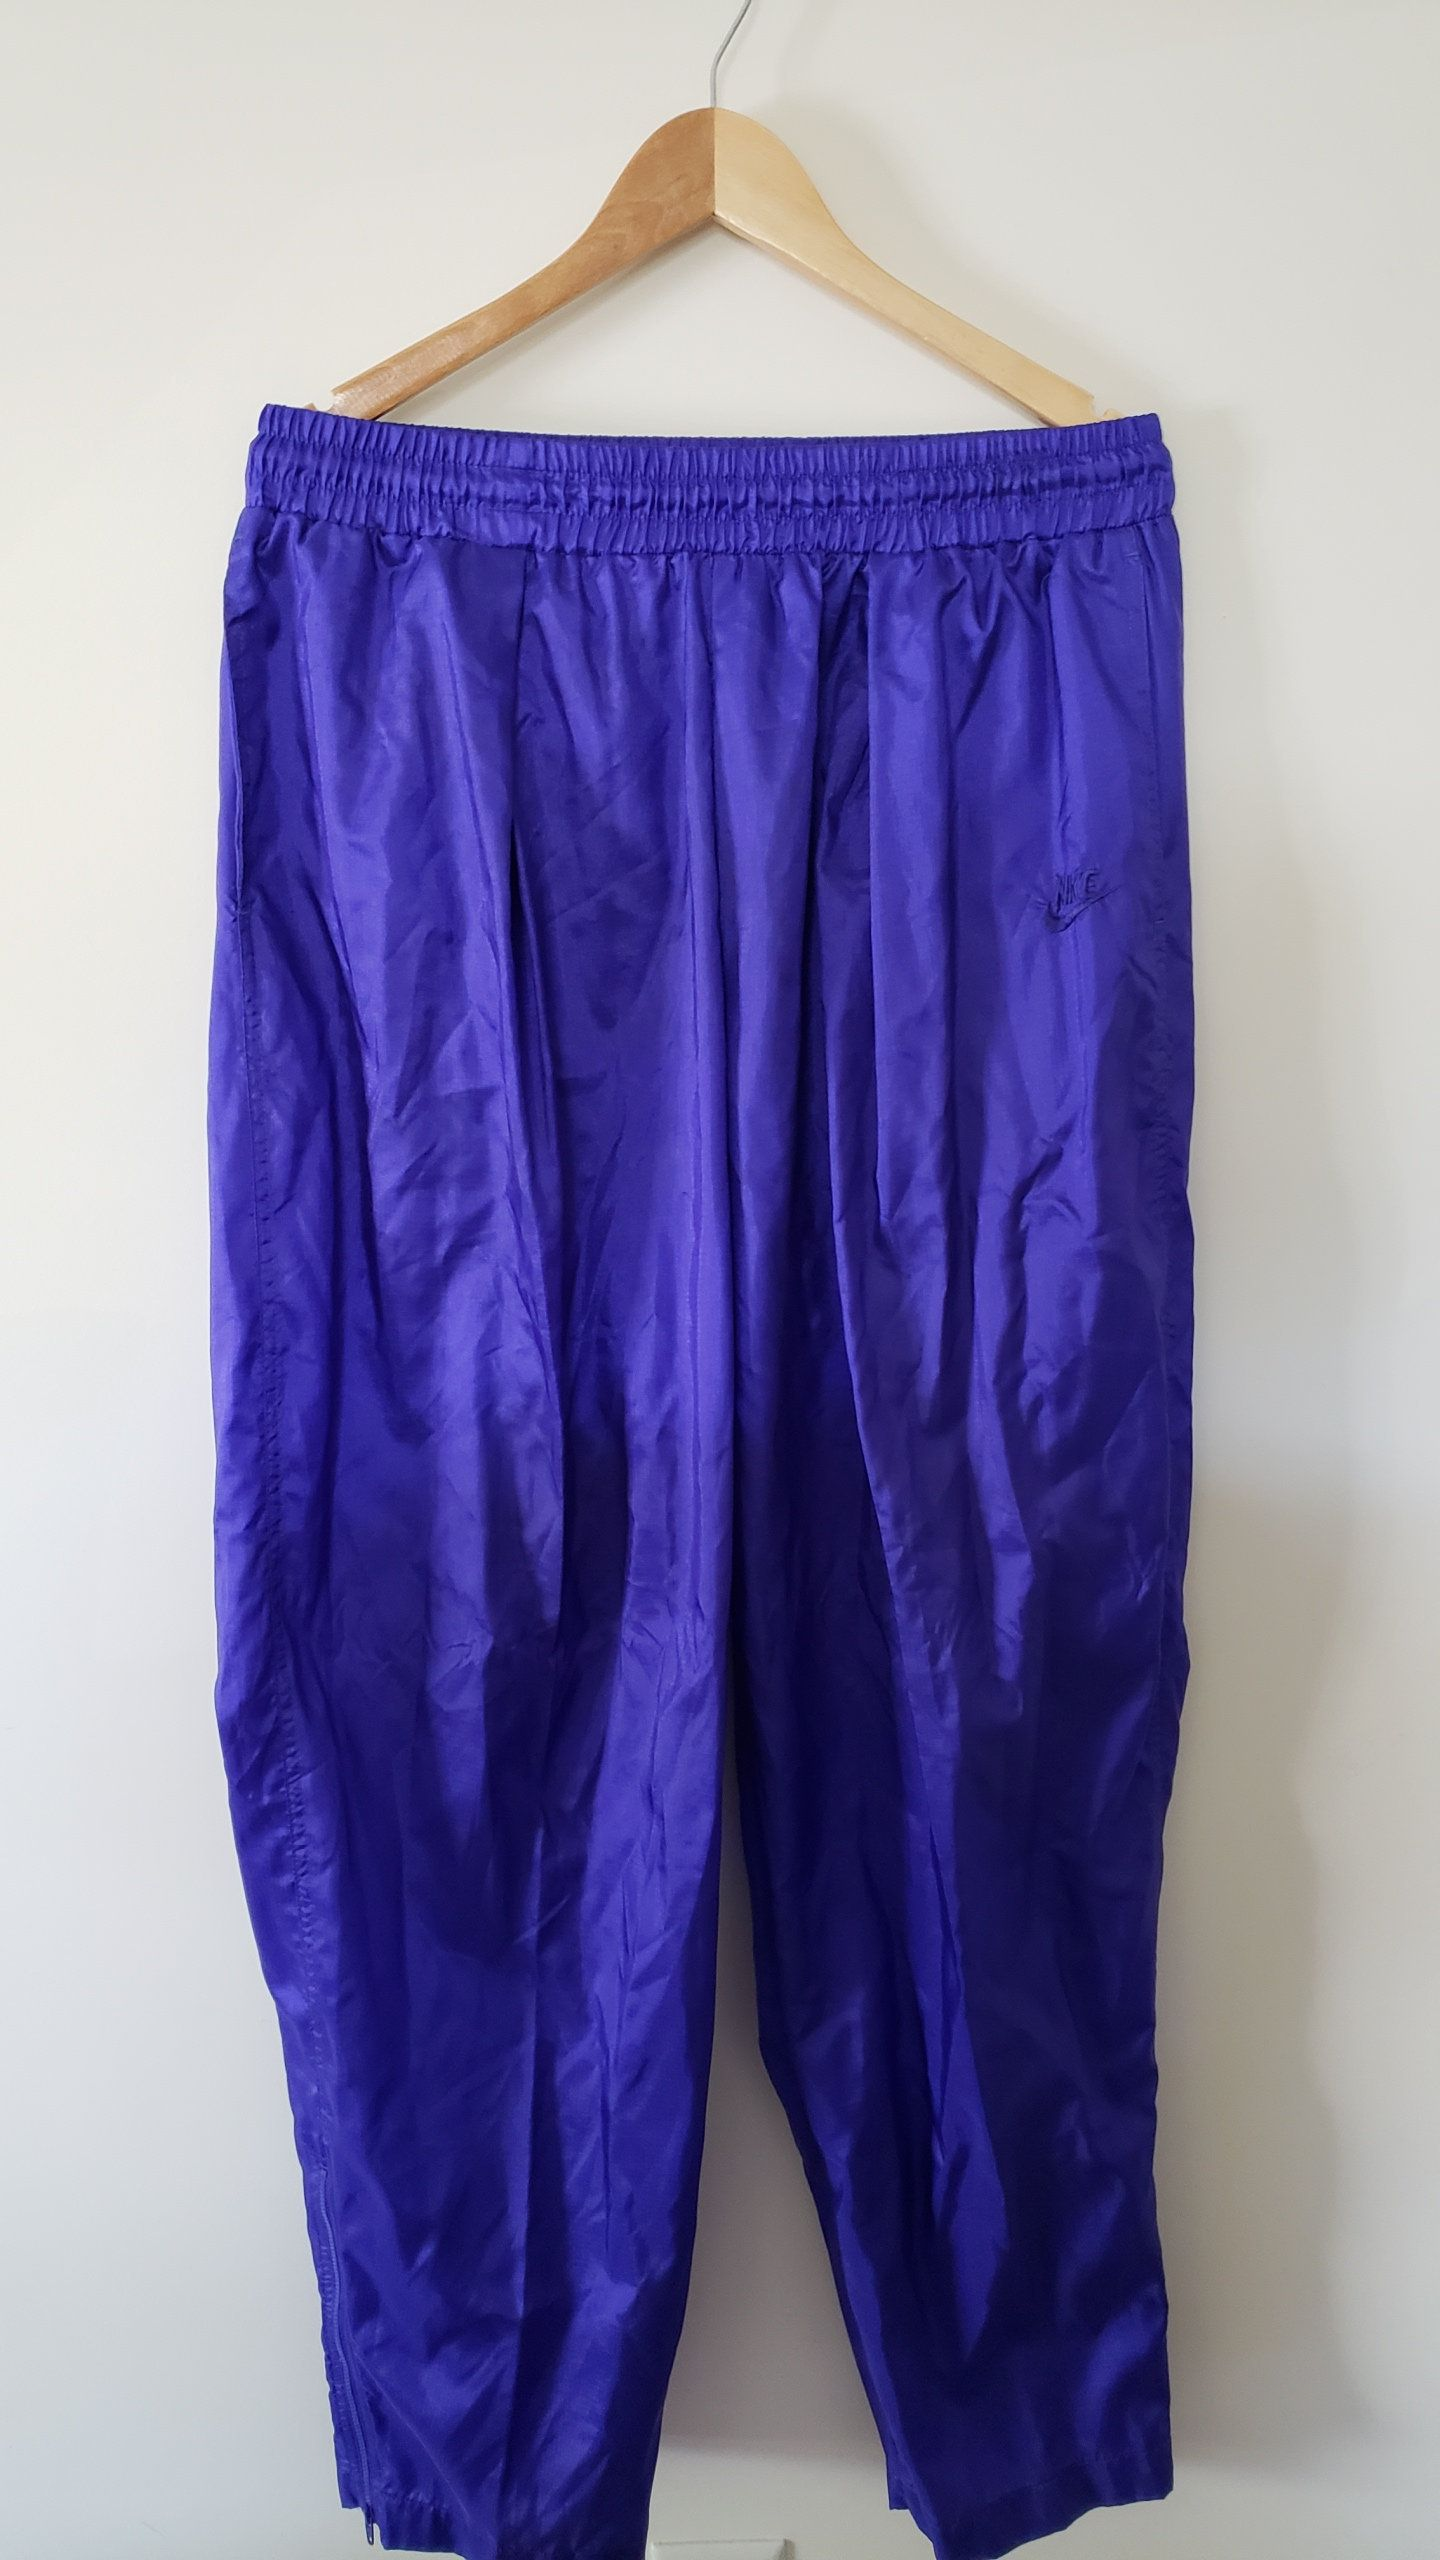 abe04133684 Vintage 90 s Nike Black Label Purple Nylon Track Wind Jogging Pants - Size  Large Summer Spring Fall Unisex Trendy Fashion Hype by RackRaidersVtg on  Etsy